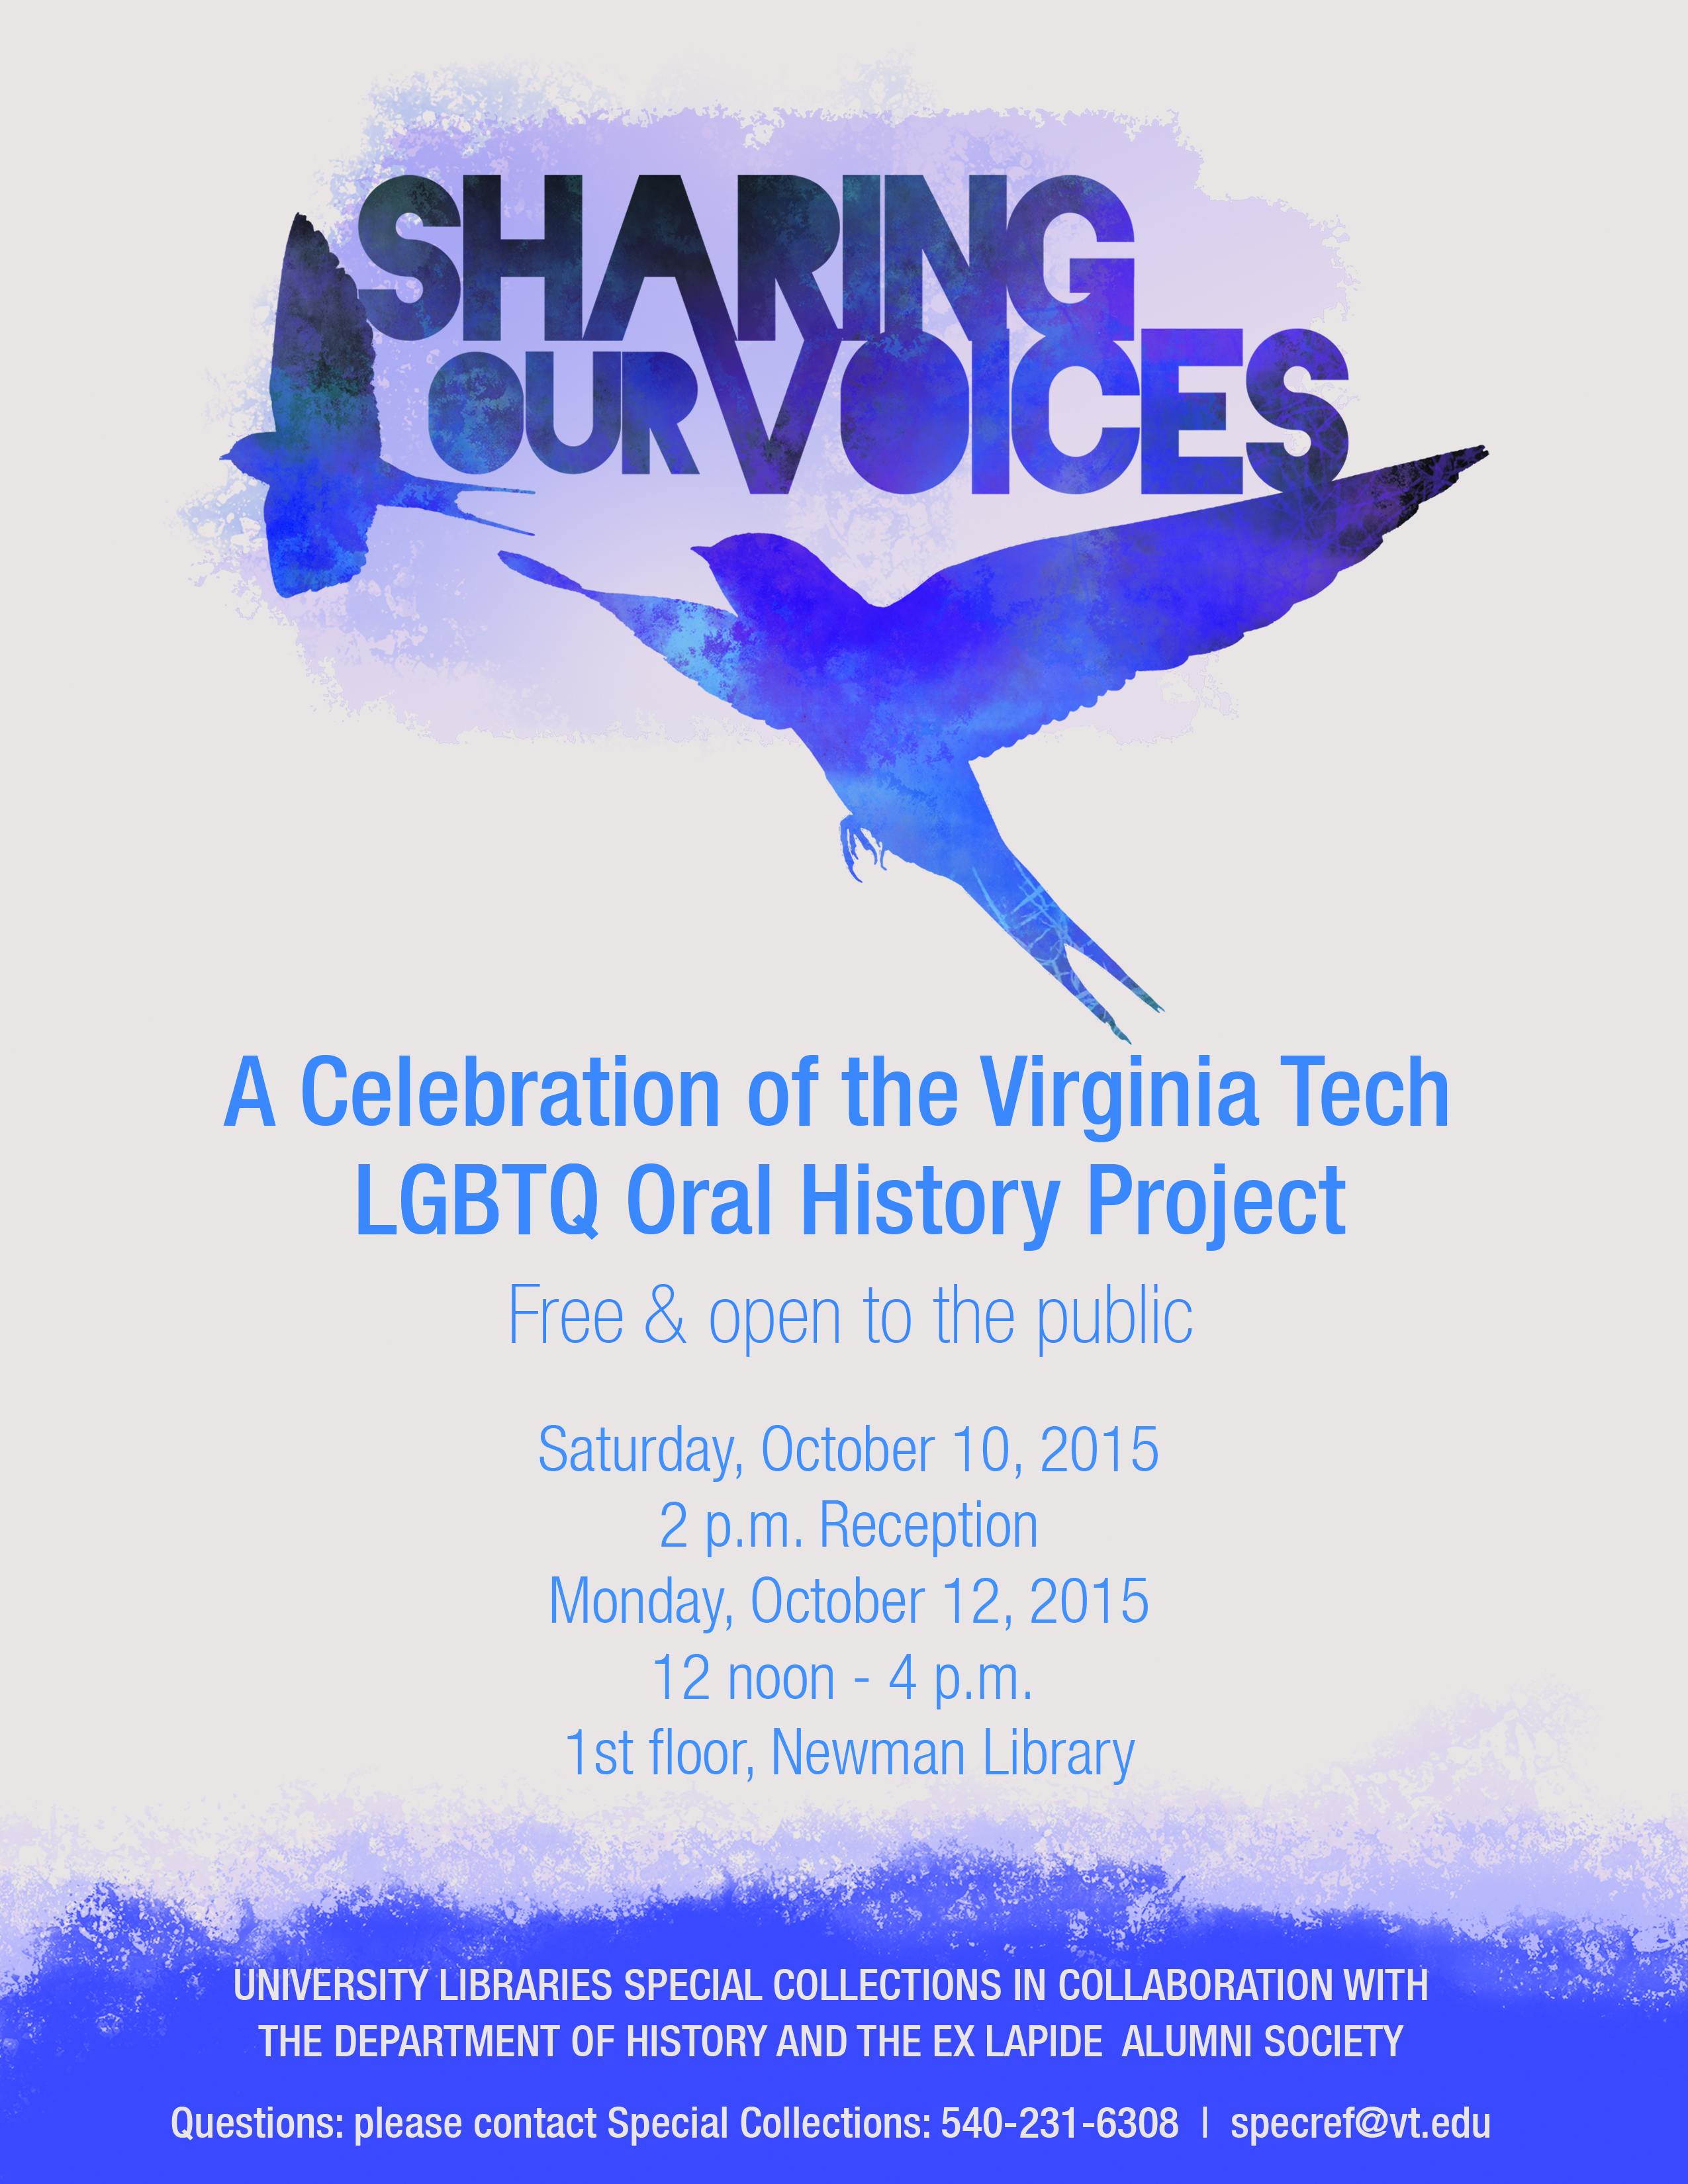 Invitation to celebration of Virginia Tech LGBTQ Oral History Project